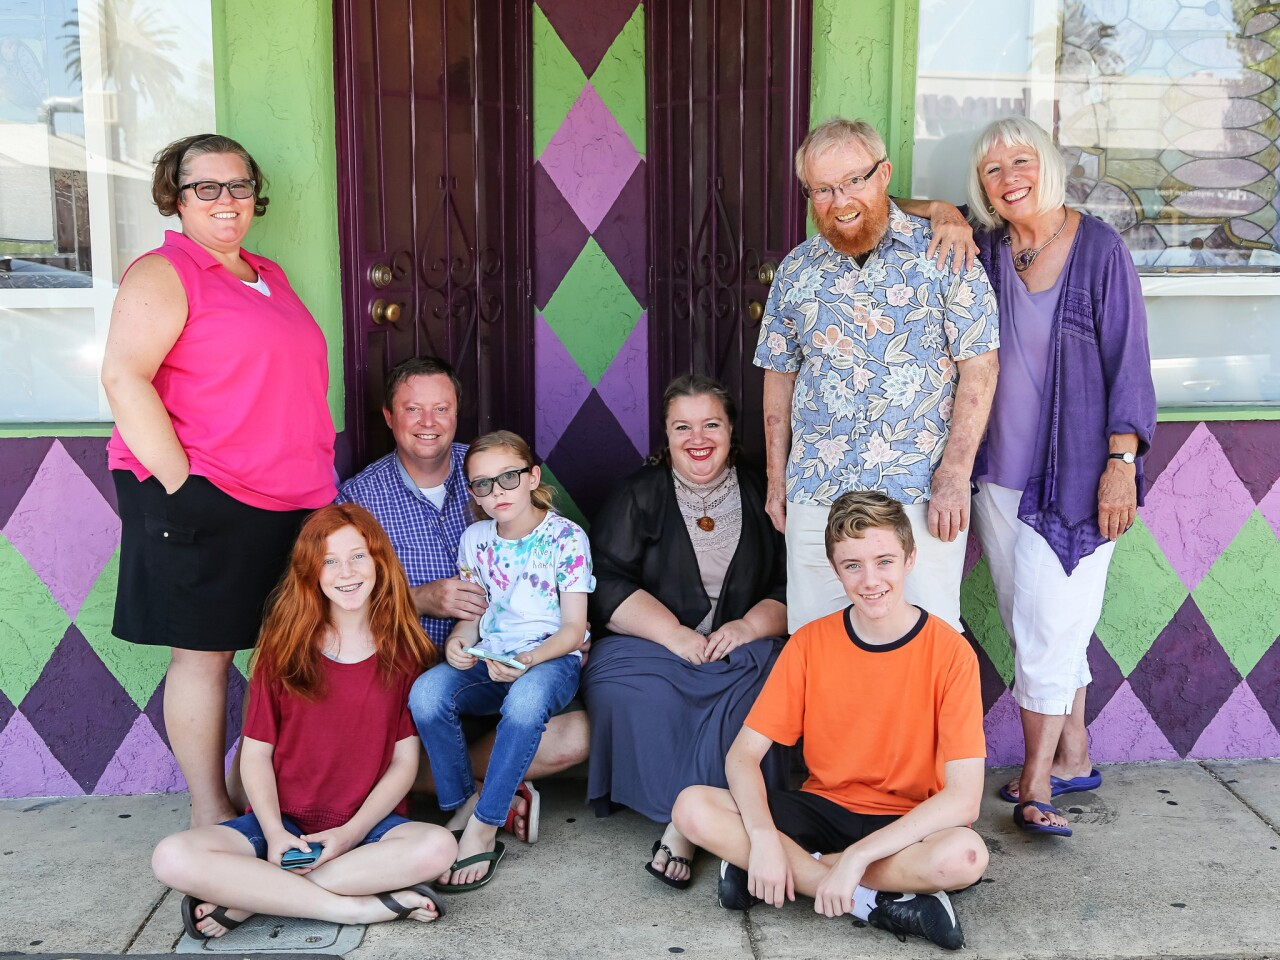 The Haven clan in front of their San Diego apartment building includes, from left, Carla (standing), Molly, 13, dad Matthew, 12-year-old Nate, Amy, 15-year-old Chris and grandparents Clayton and Sharon.